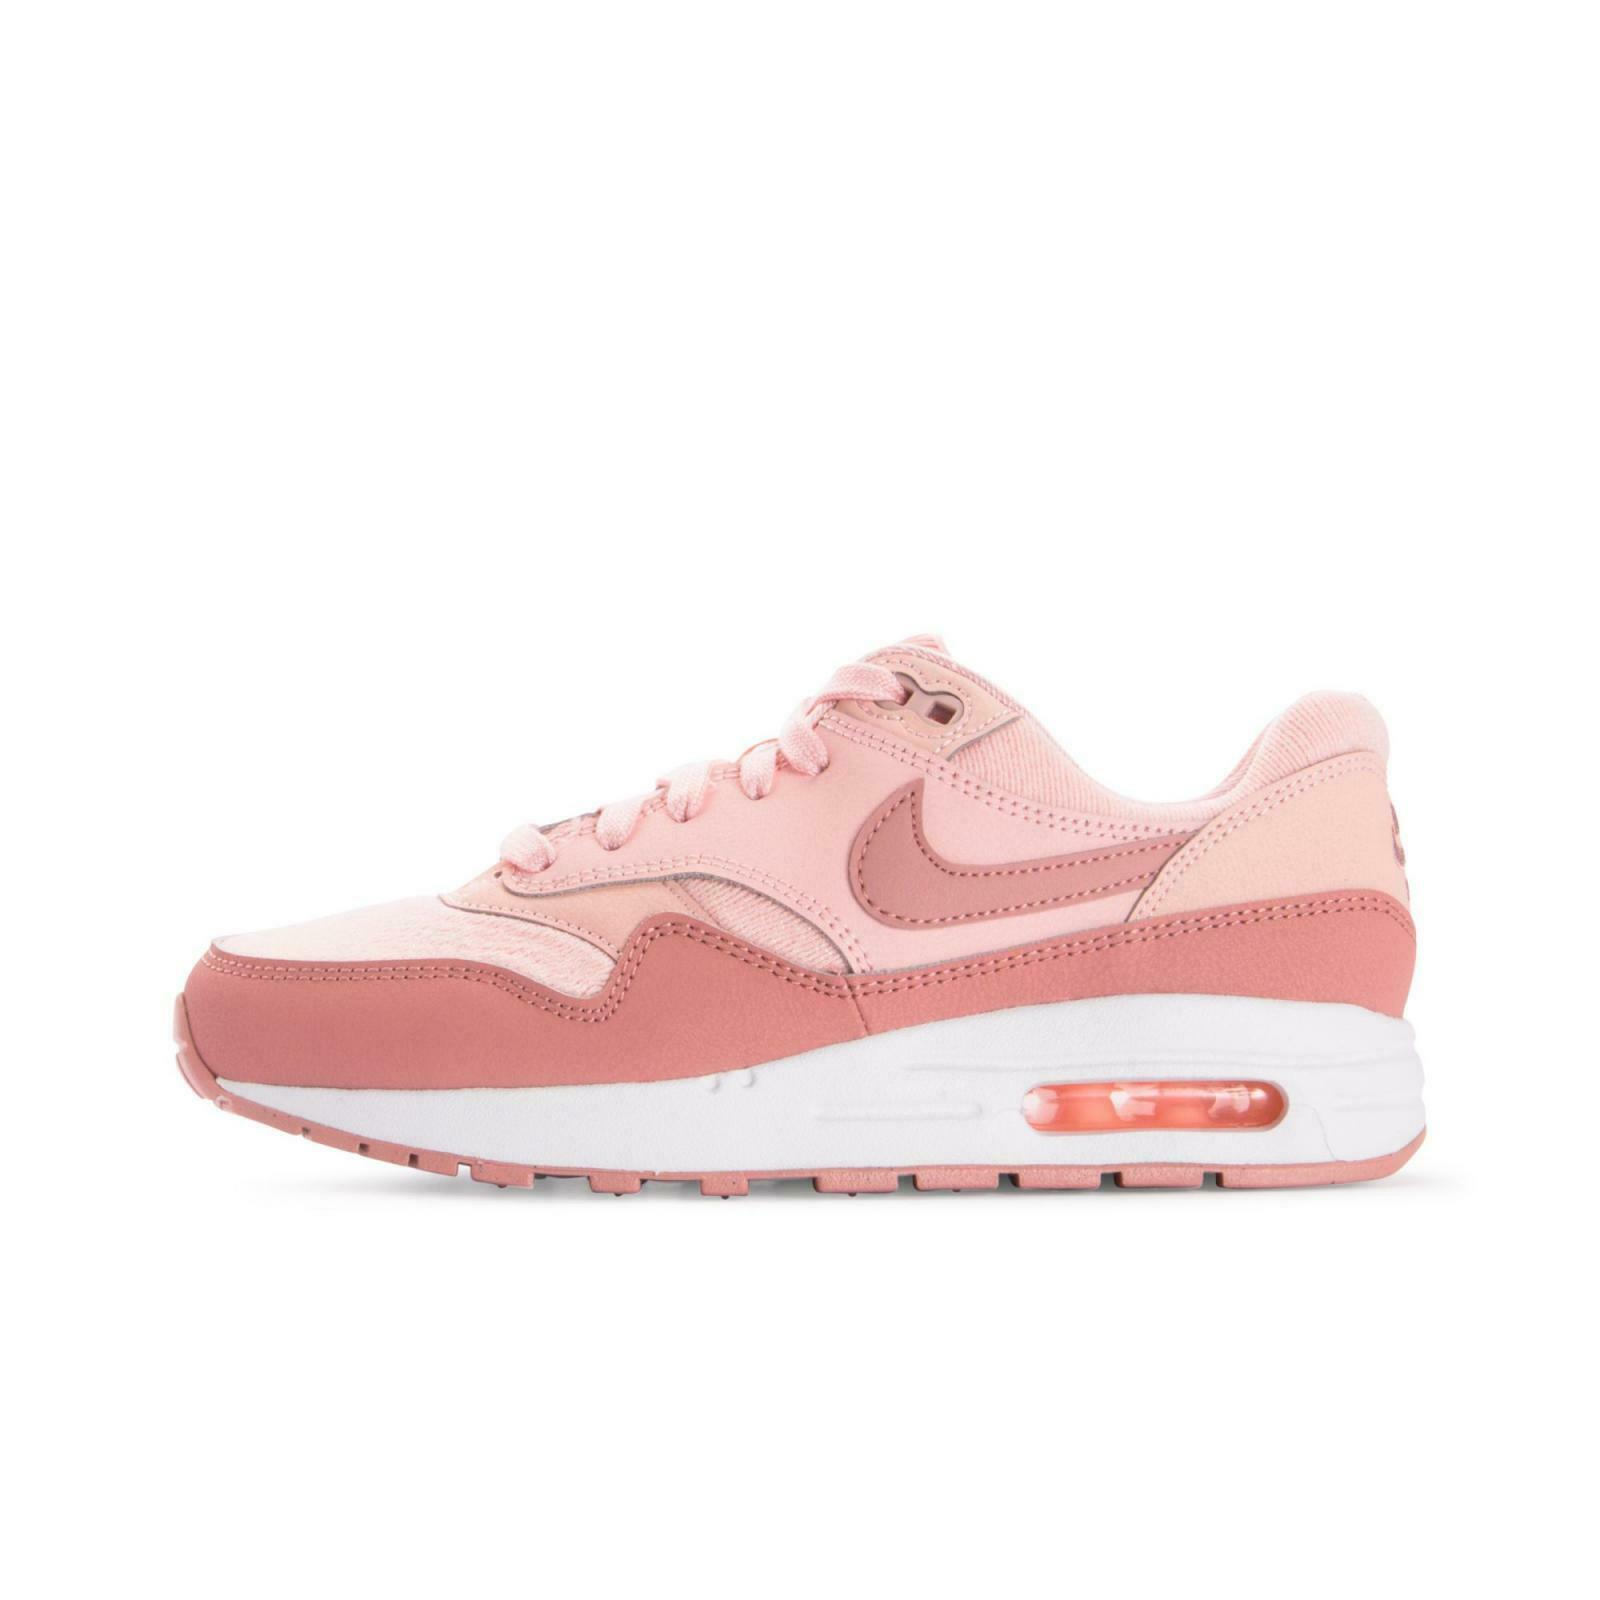 Size 5.5y   7 Women's Nike Air Max 1 SE Storm Pink Aq3188 600 Casual Running